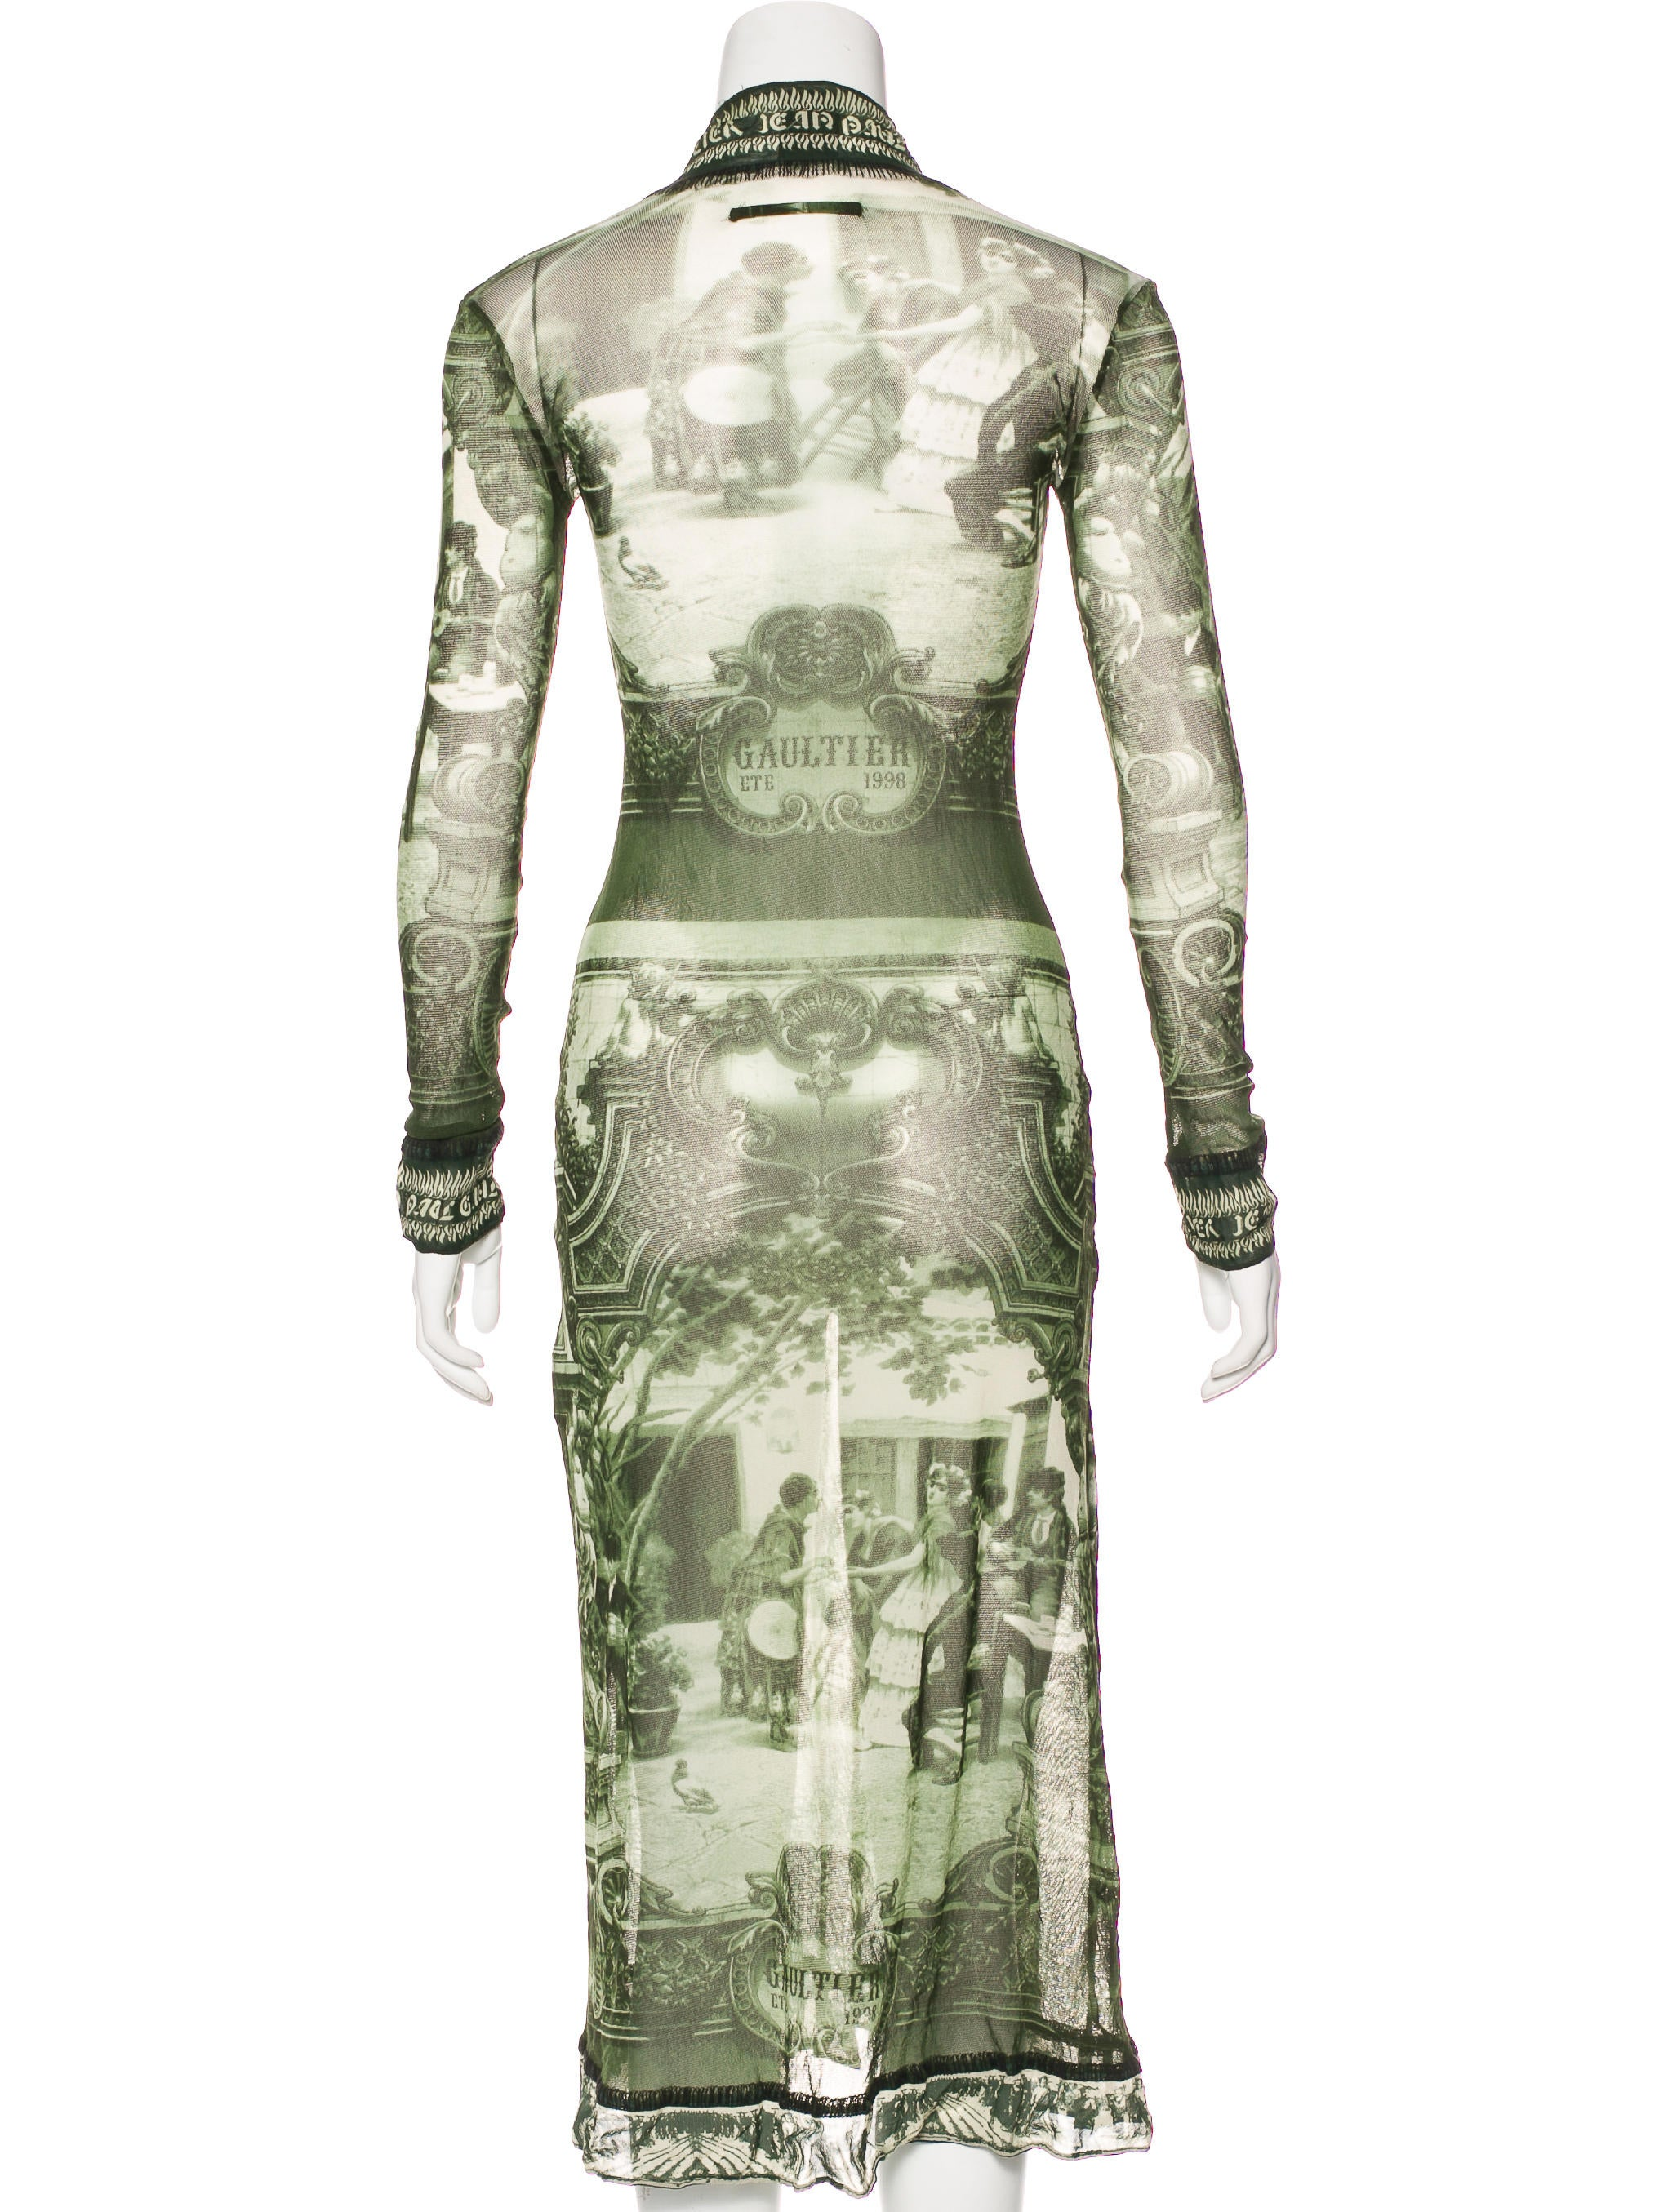 Jean paul gaultier classique printed midi dress clothing for Jean paul gaultier clothing